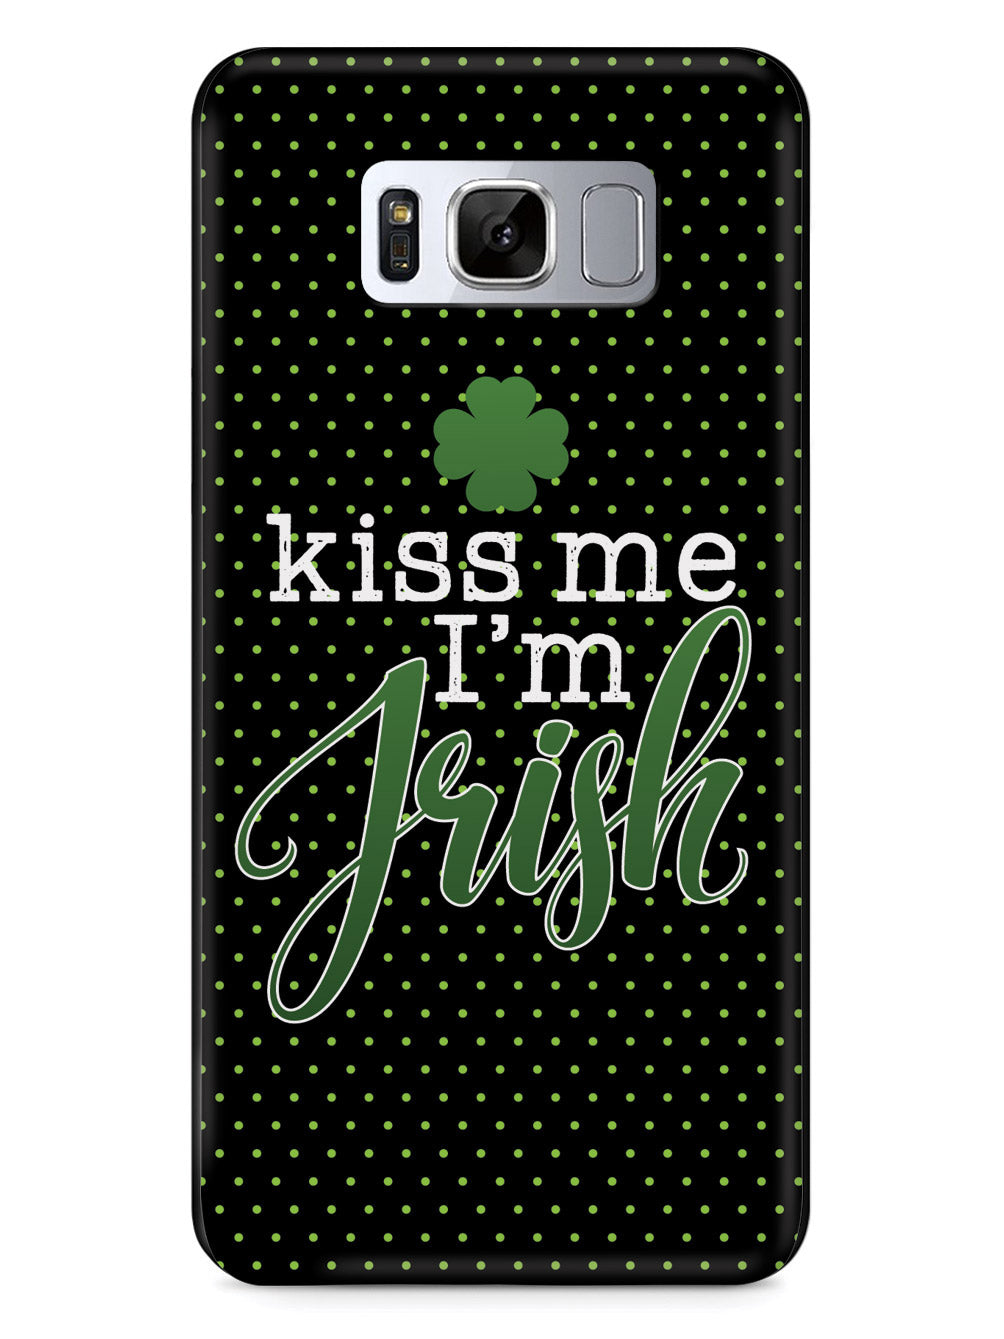 Kiss Me, I'm Irish - Polka Dots - Black Case